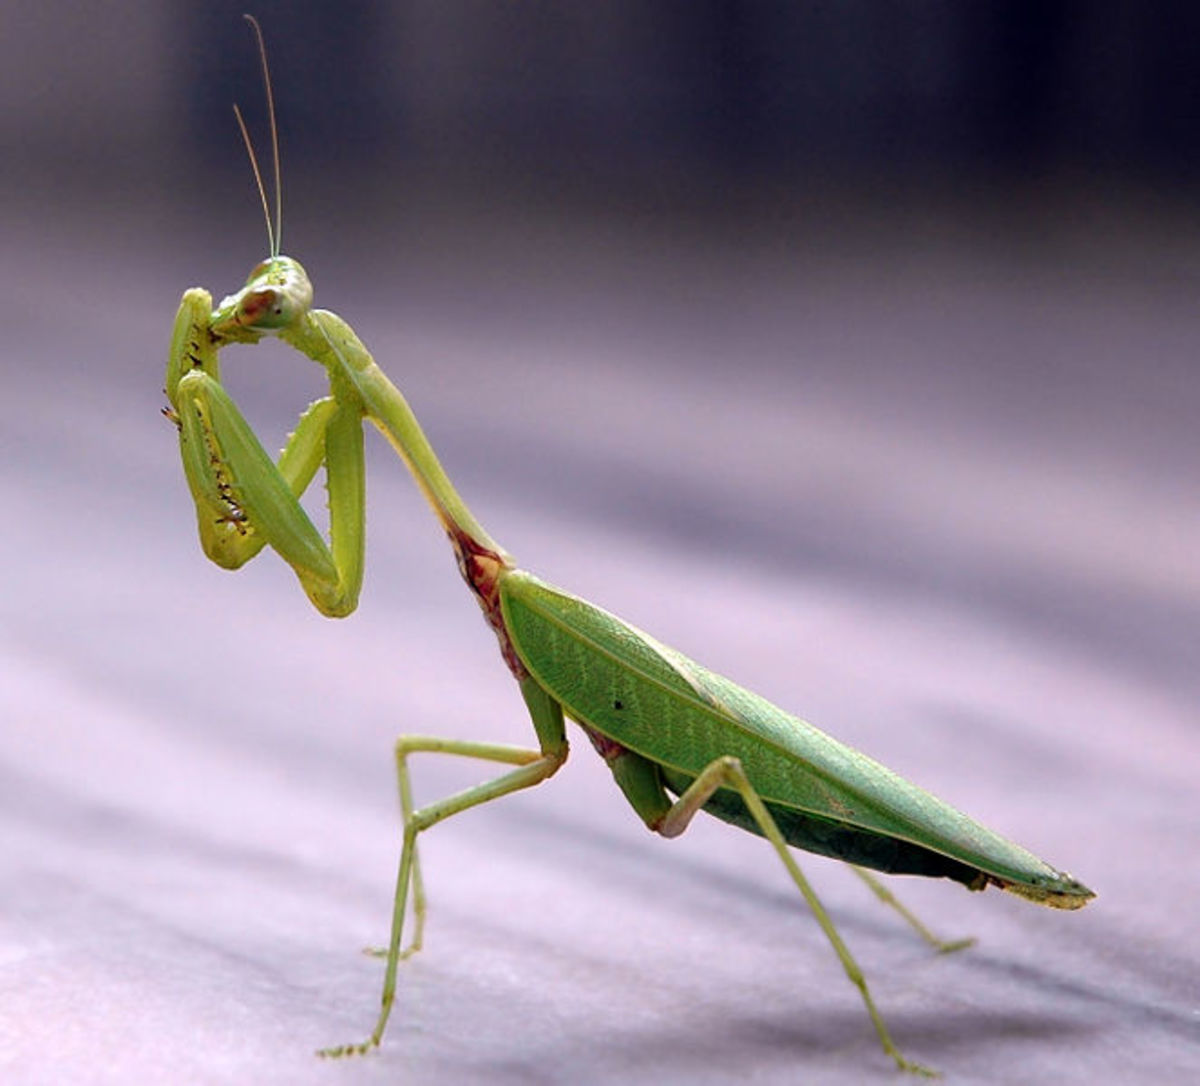 Preying Mantis will eat up all the pests in your yard and garden.